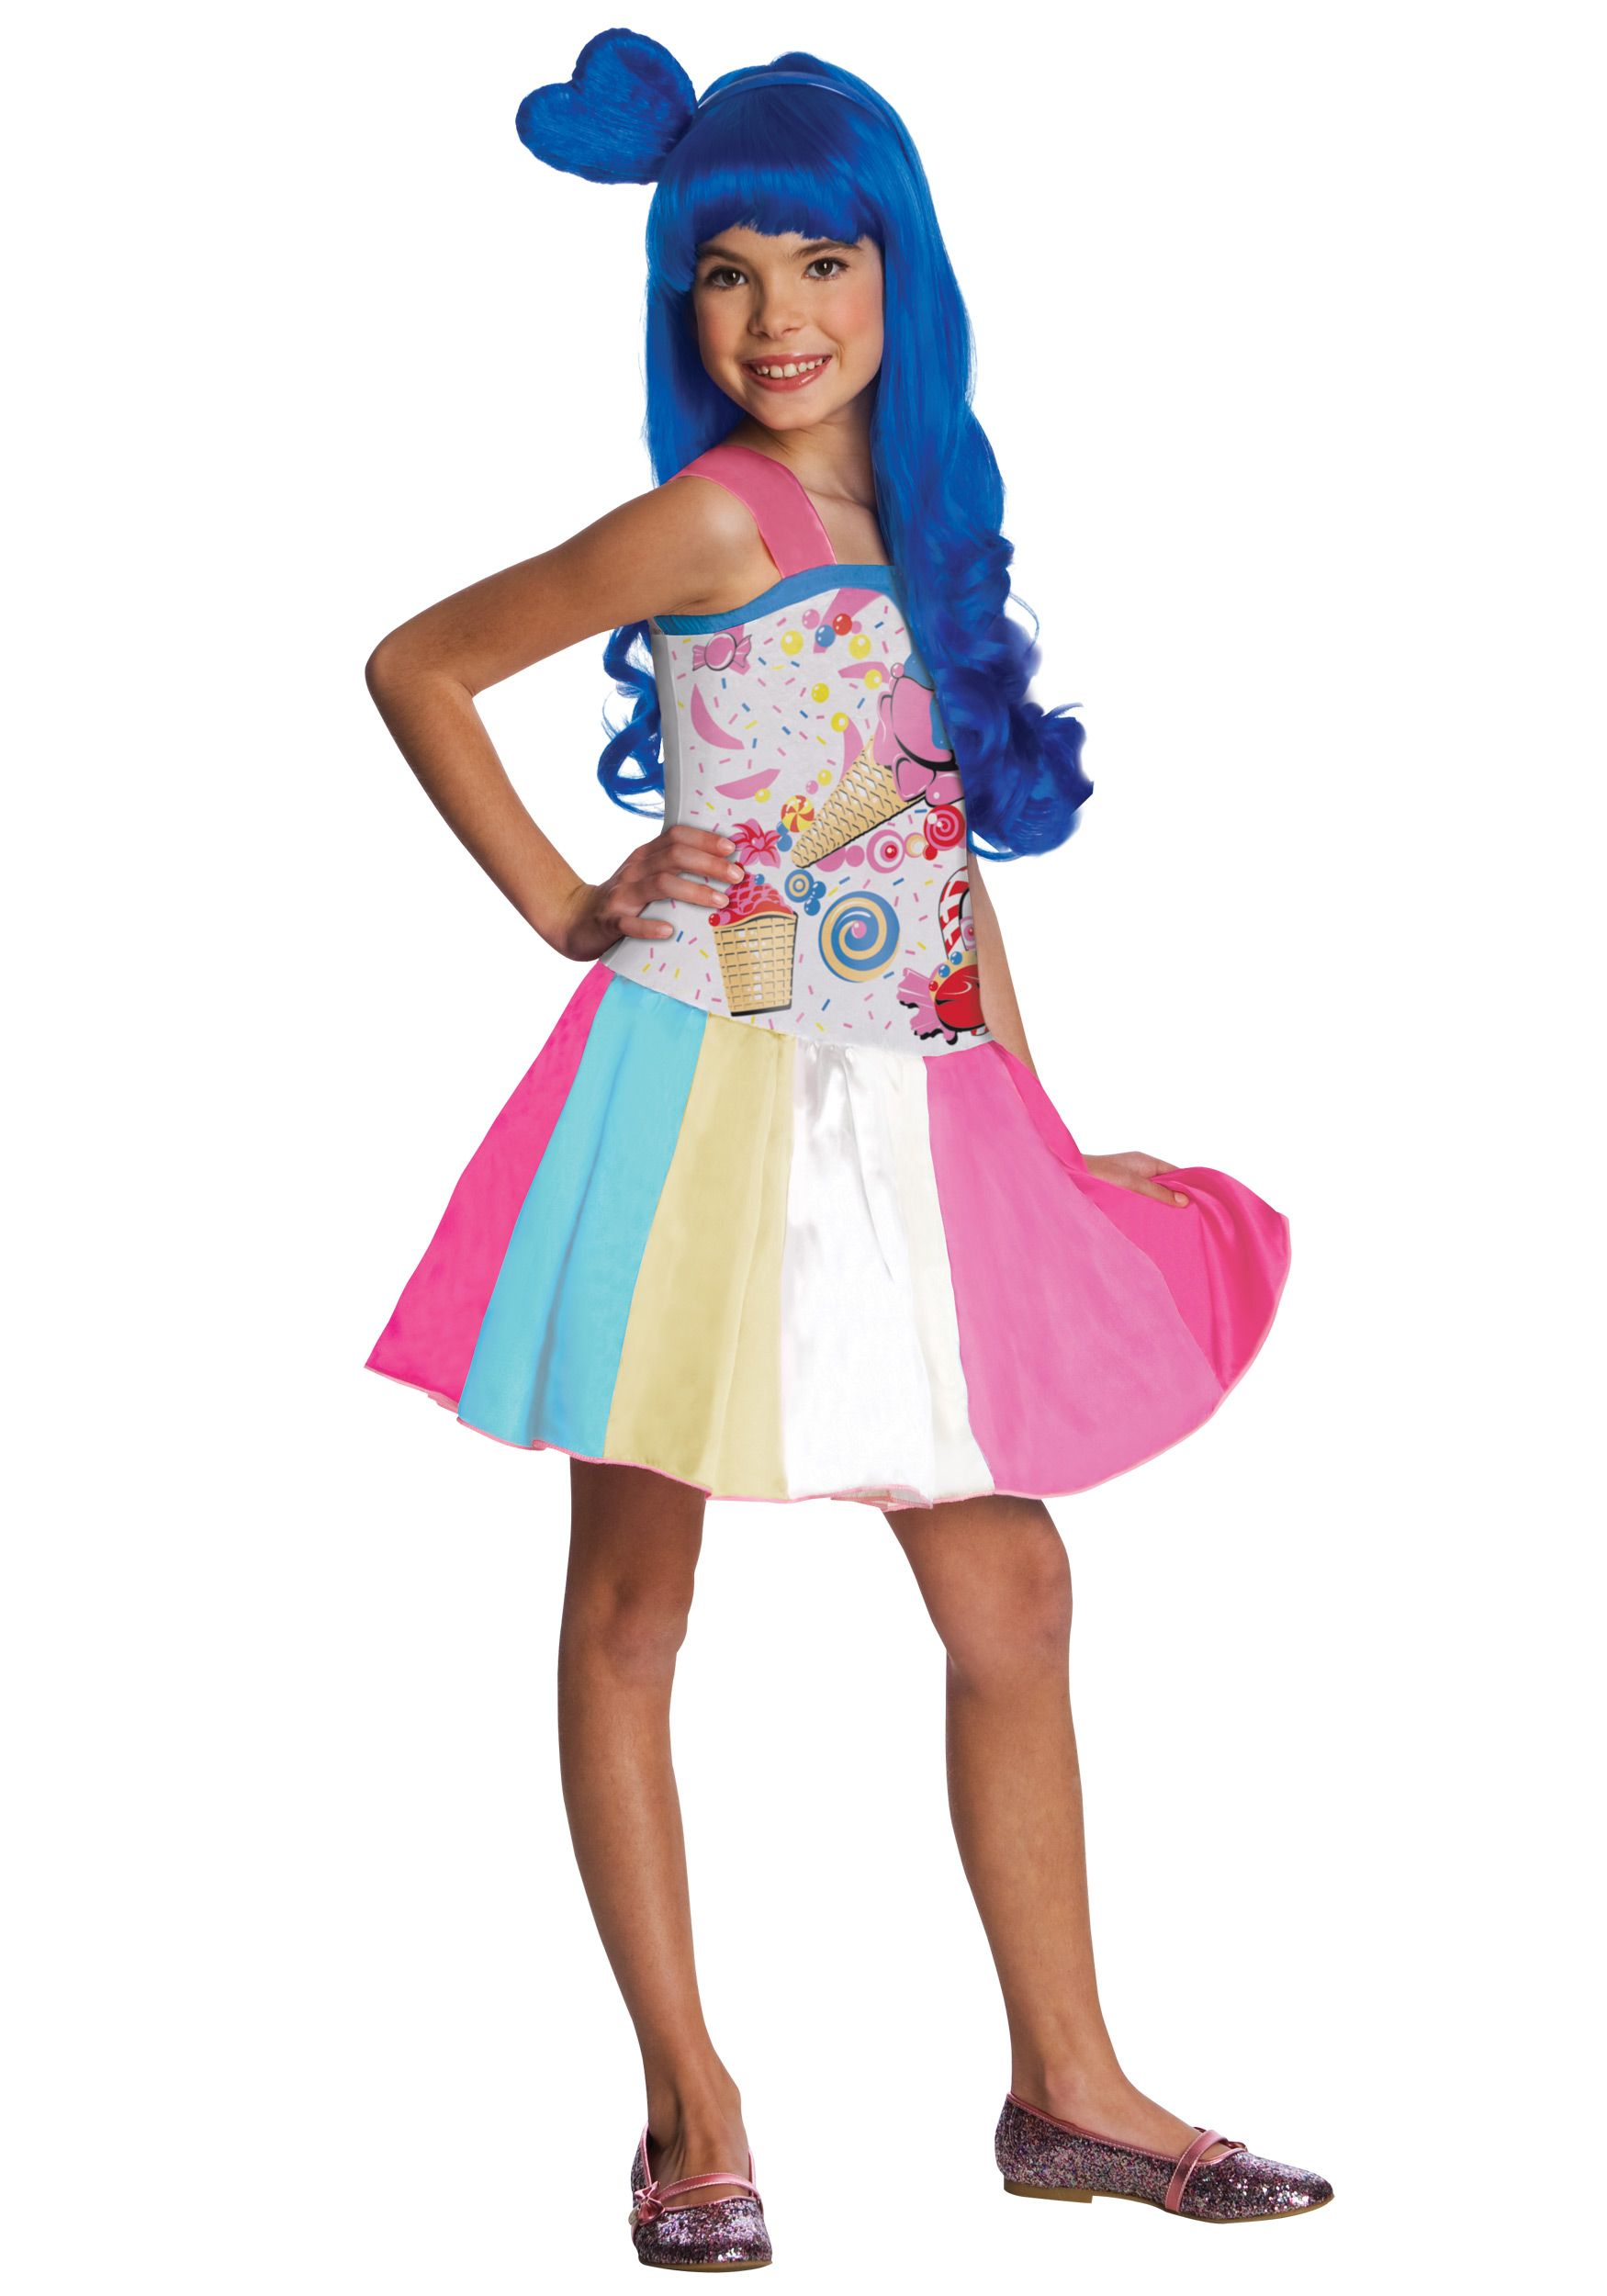 For Charlotte - kids katy perry costume ideas | Halloween ...